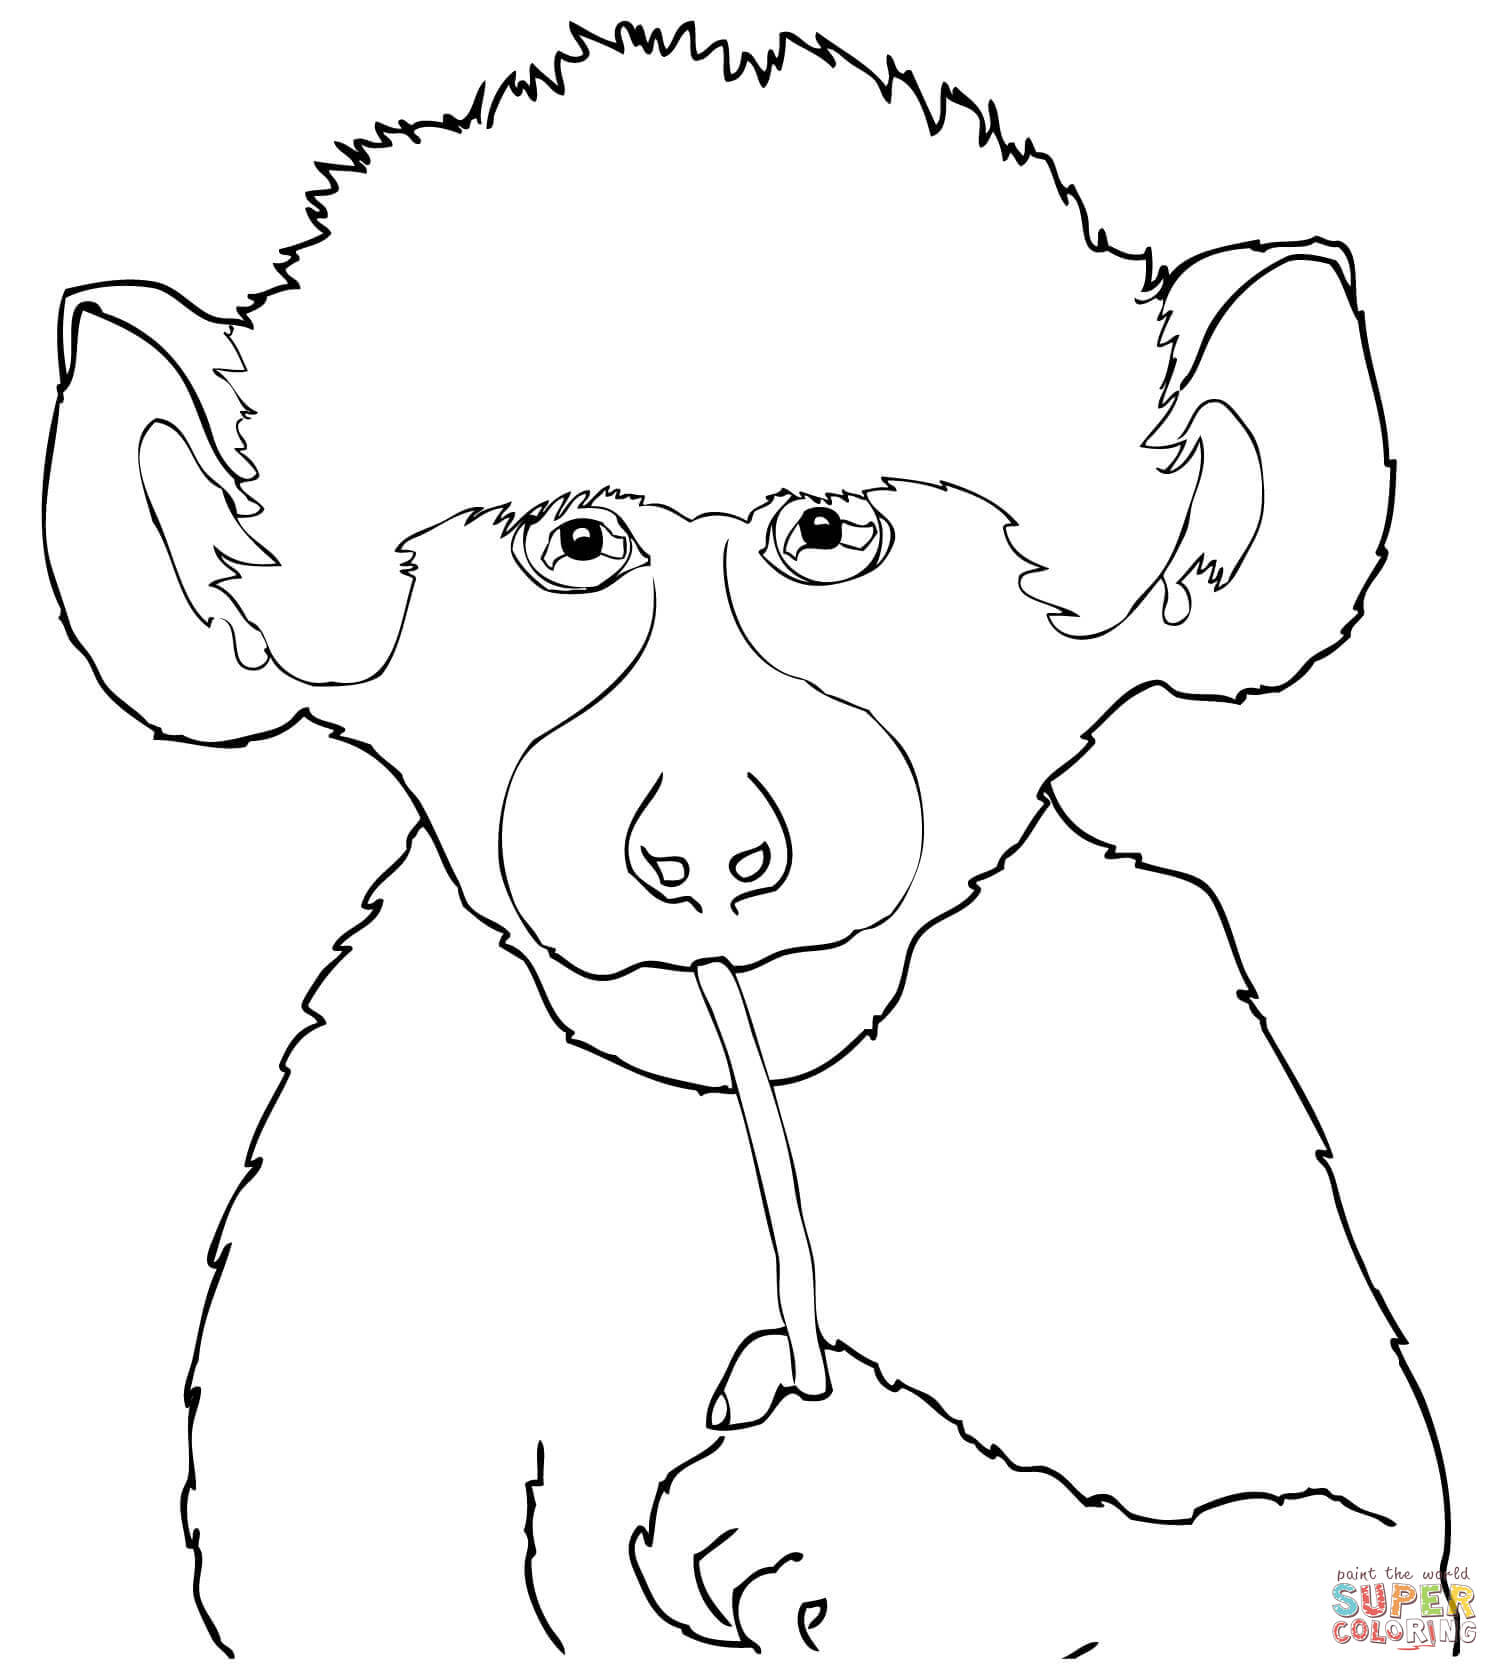 Baboon coloring #12, Download drawings